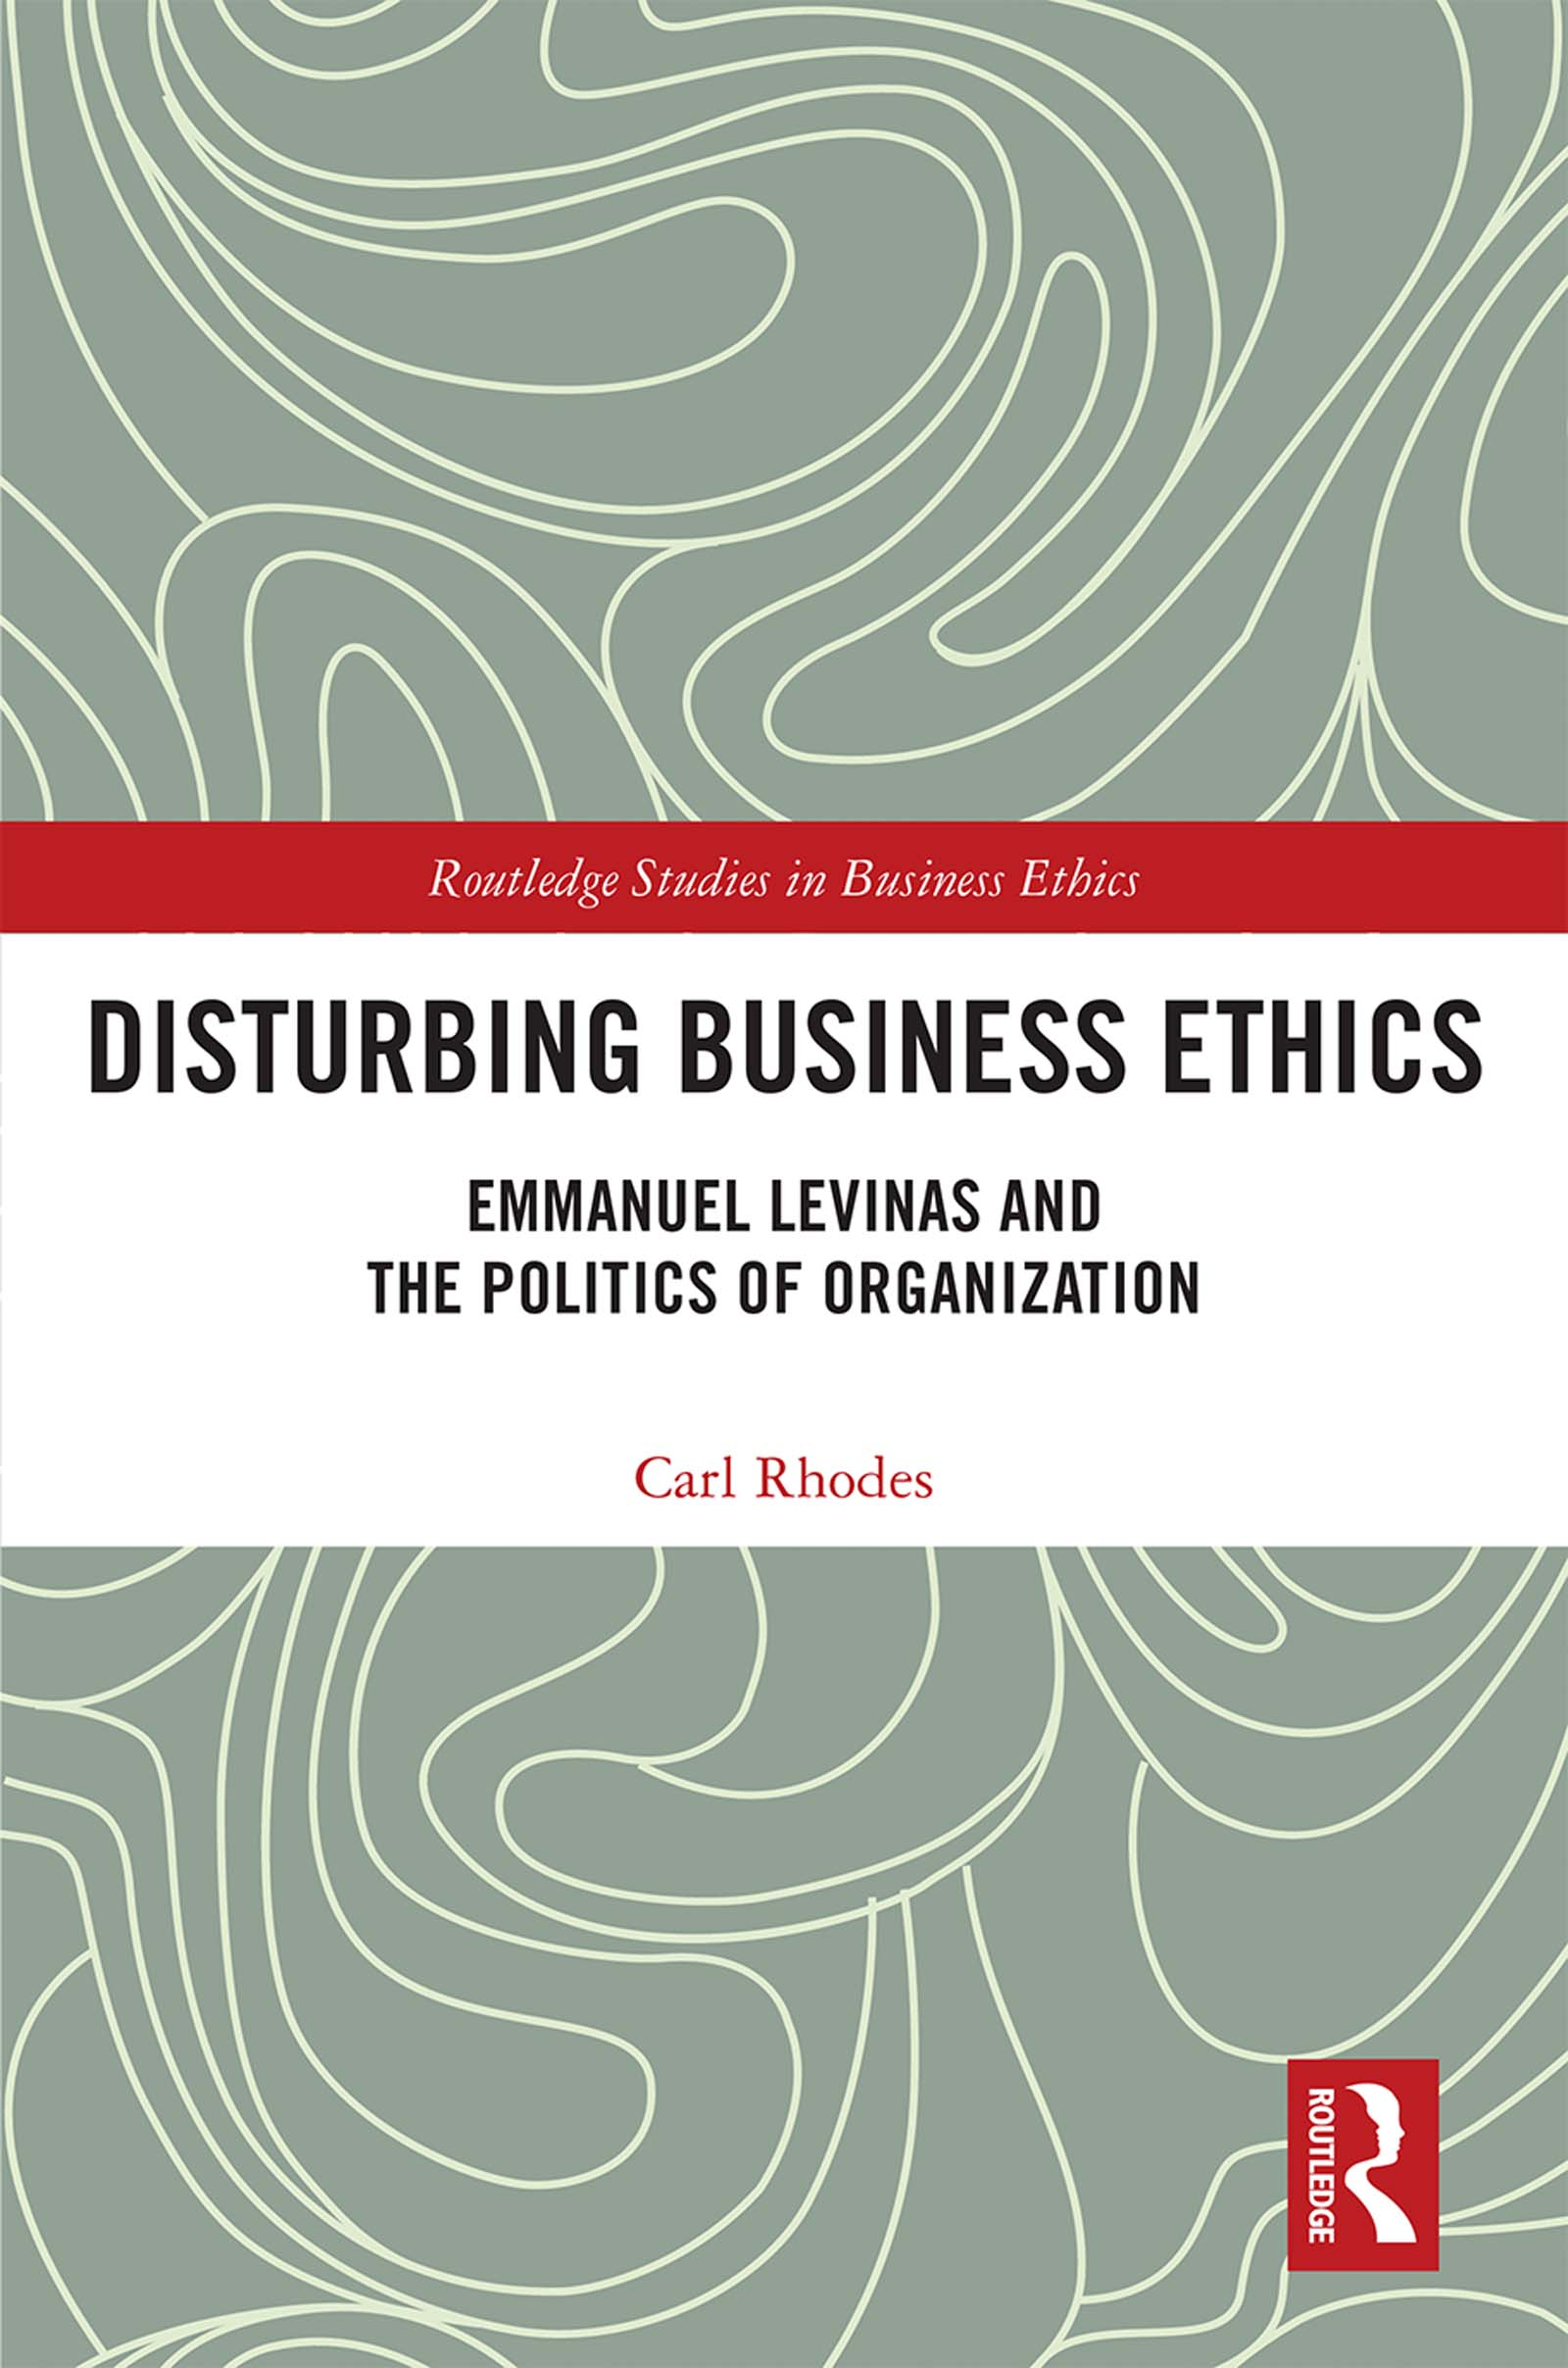 Disturbing Business Ethics: Emmanuel Levinas and the Politics of Organization book cover